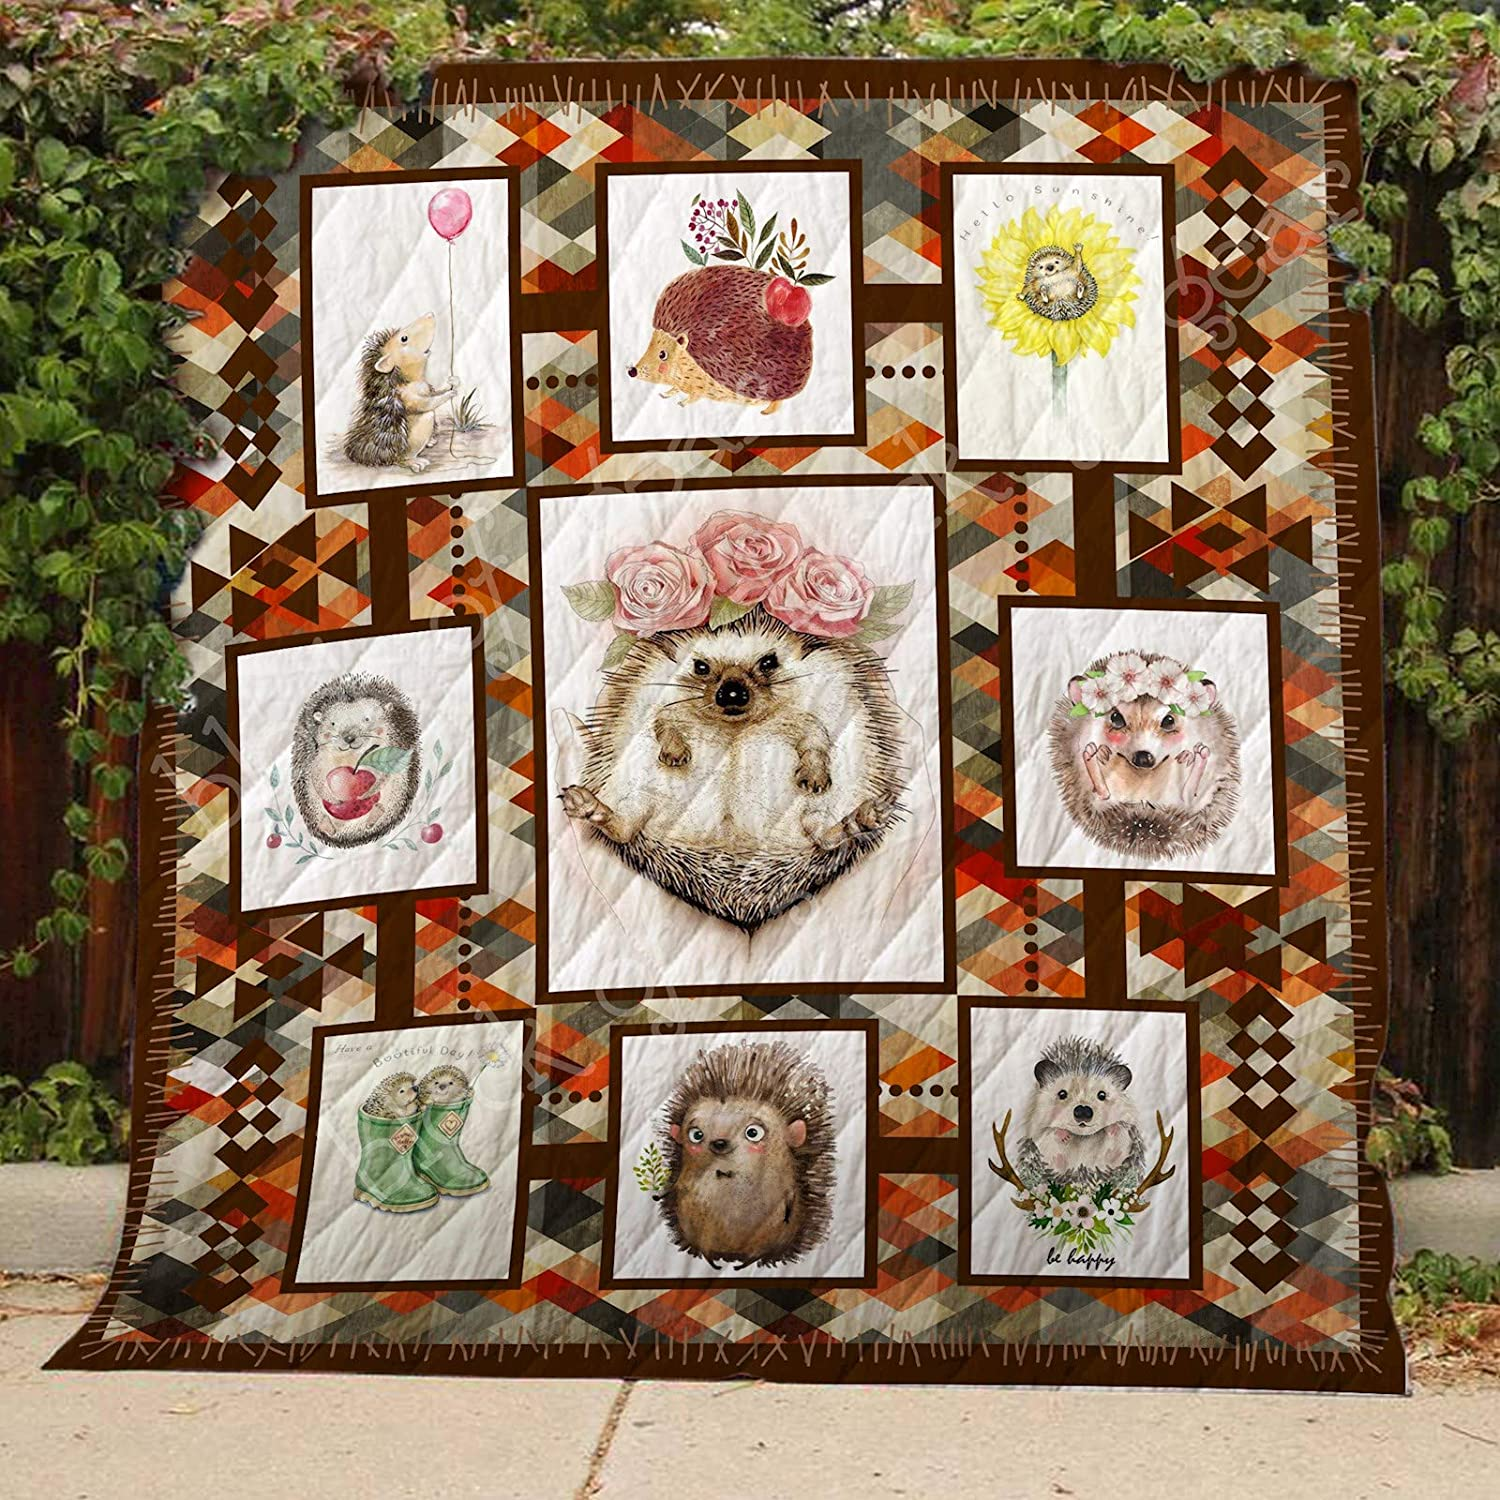 Hedgehog Quilt TH490, Queen All-Season Quilts Comforters with Reversible Cotton King Queen Twin Size - Best Decorative Quilts-Unique Quilted for Gifts